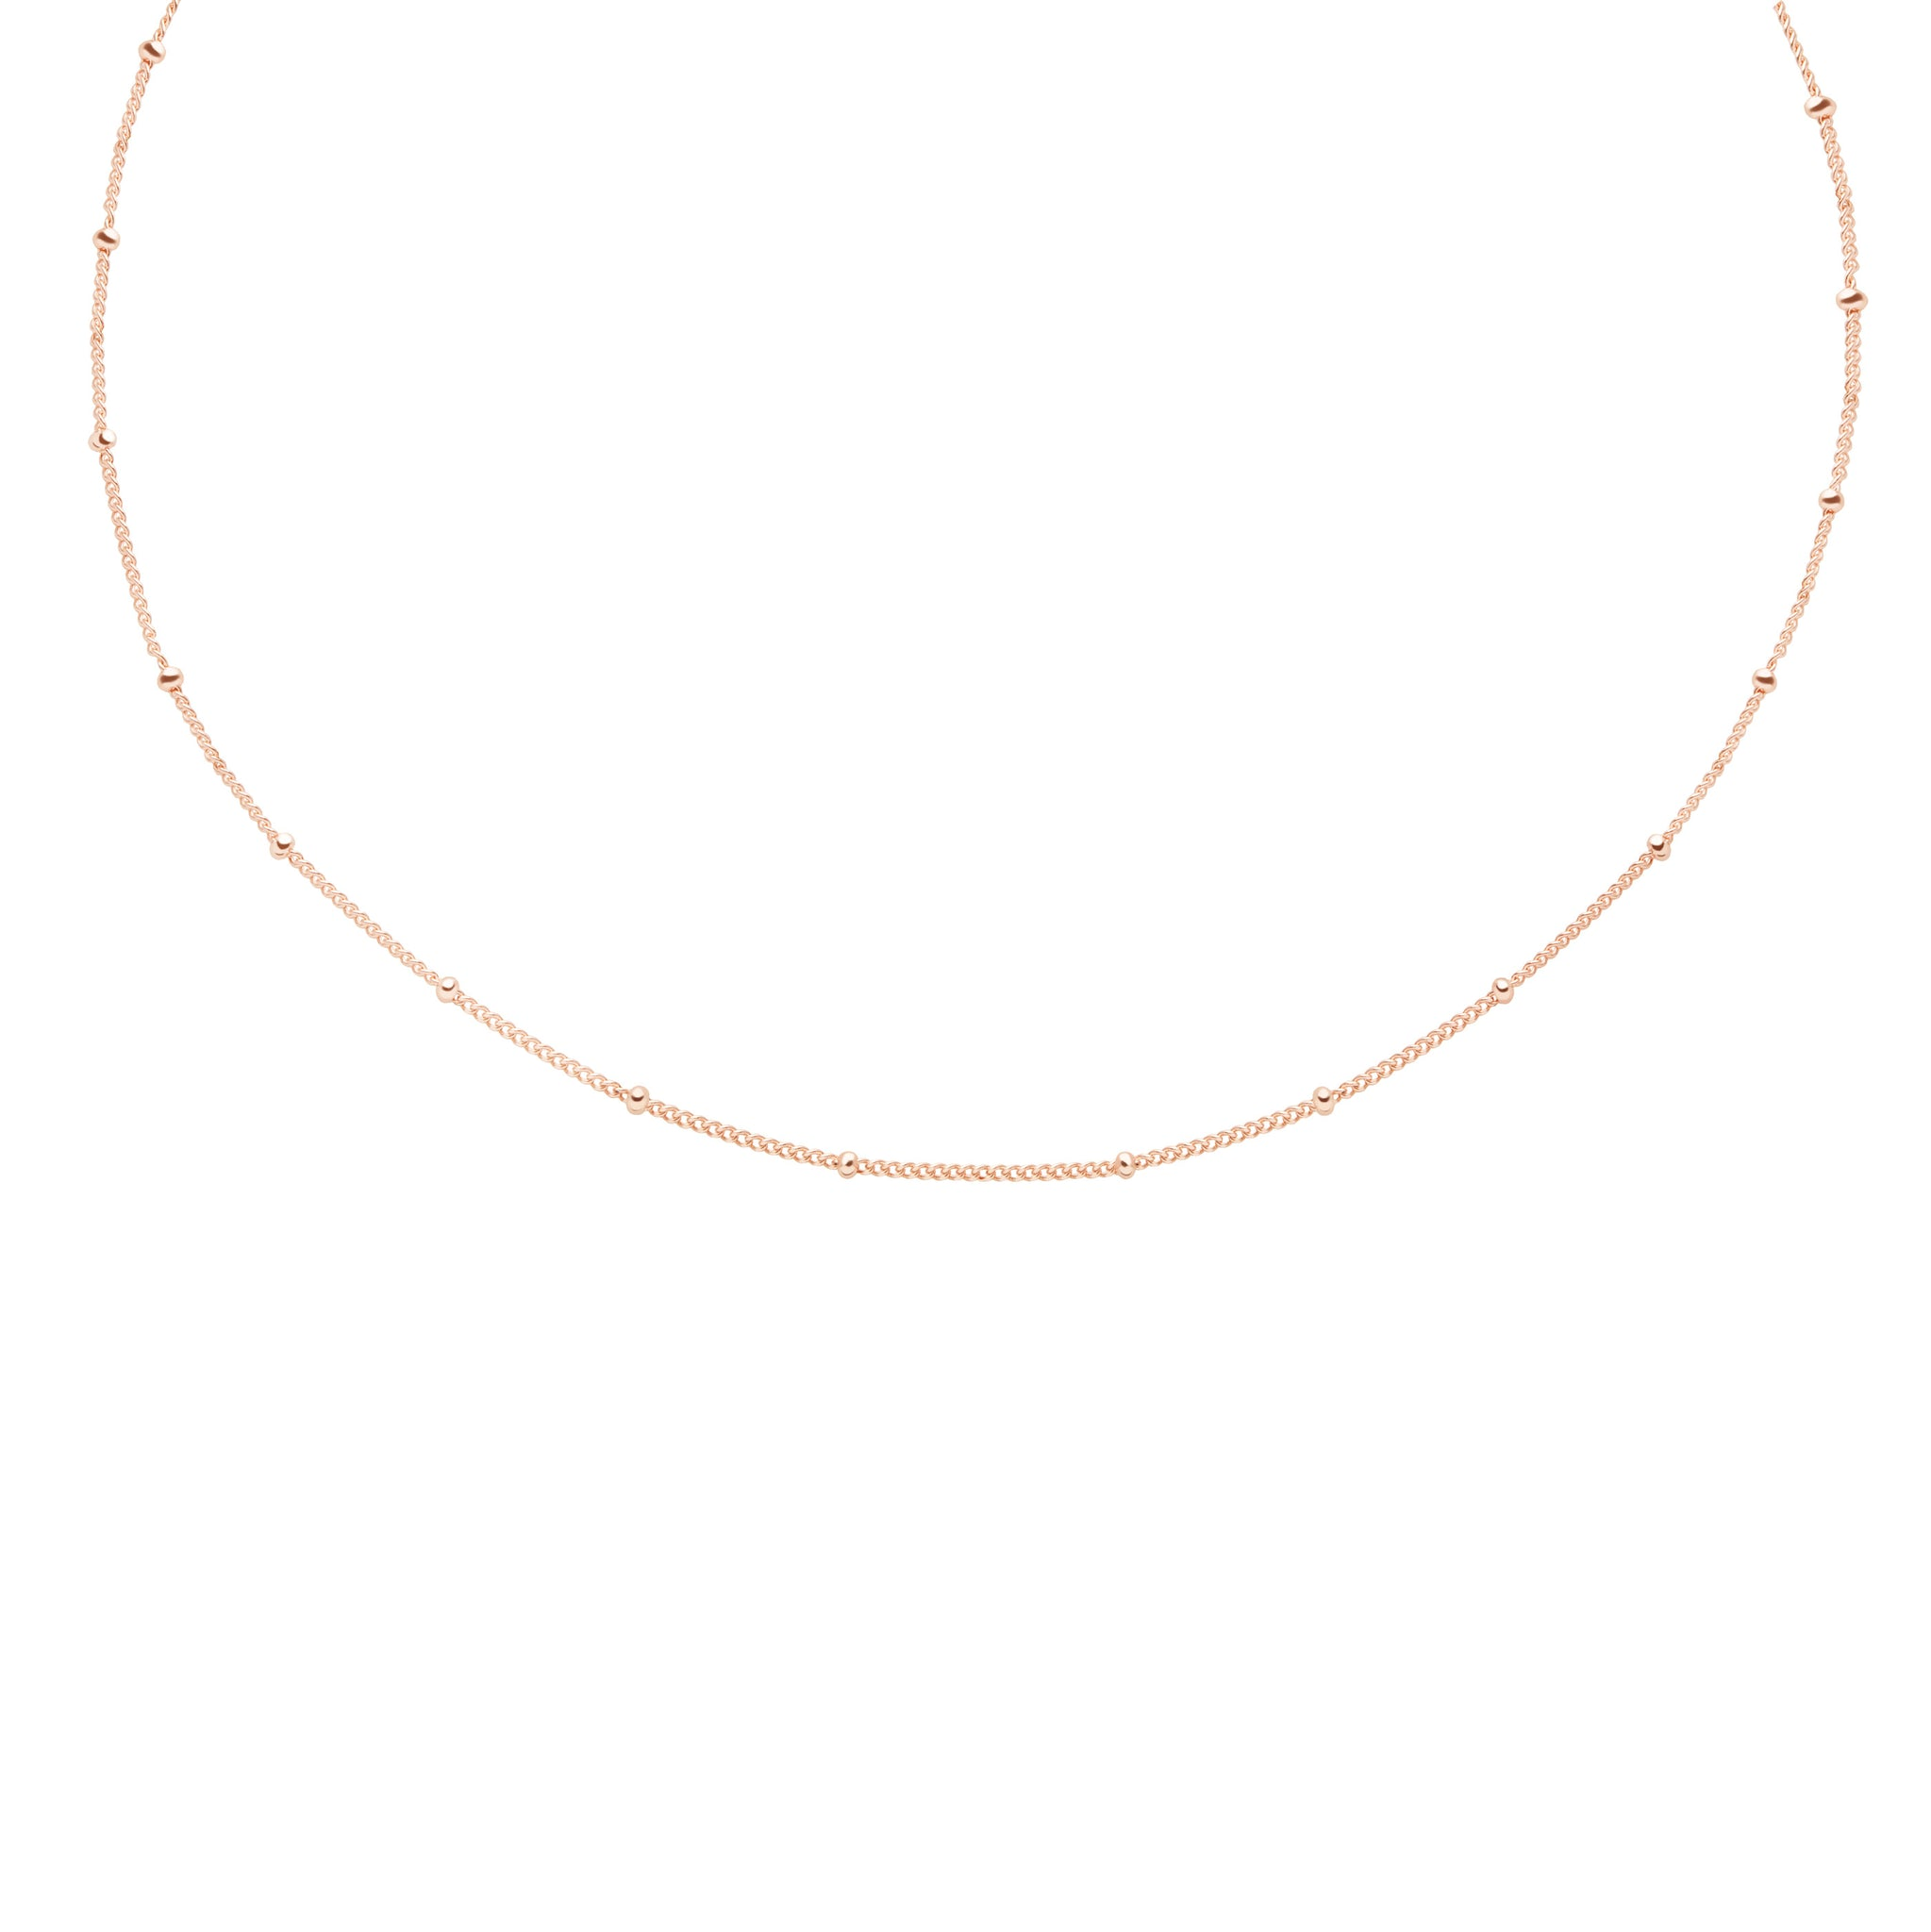 Basic Small Beaded Choker in Rose Gold